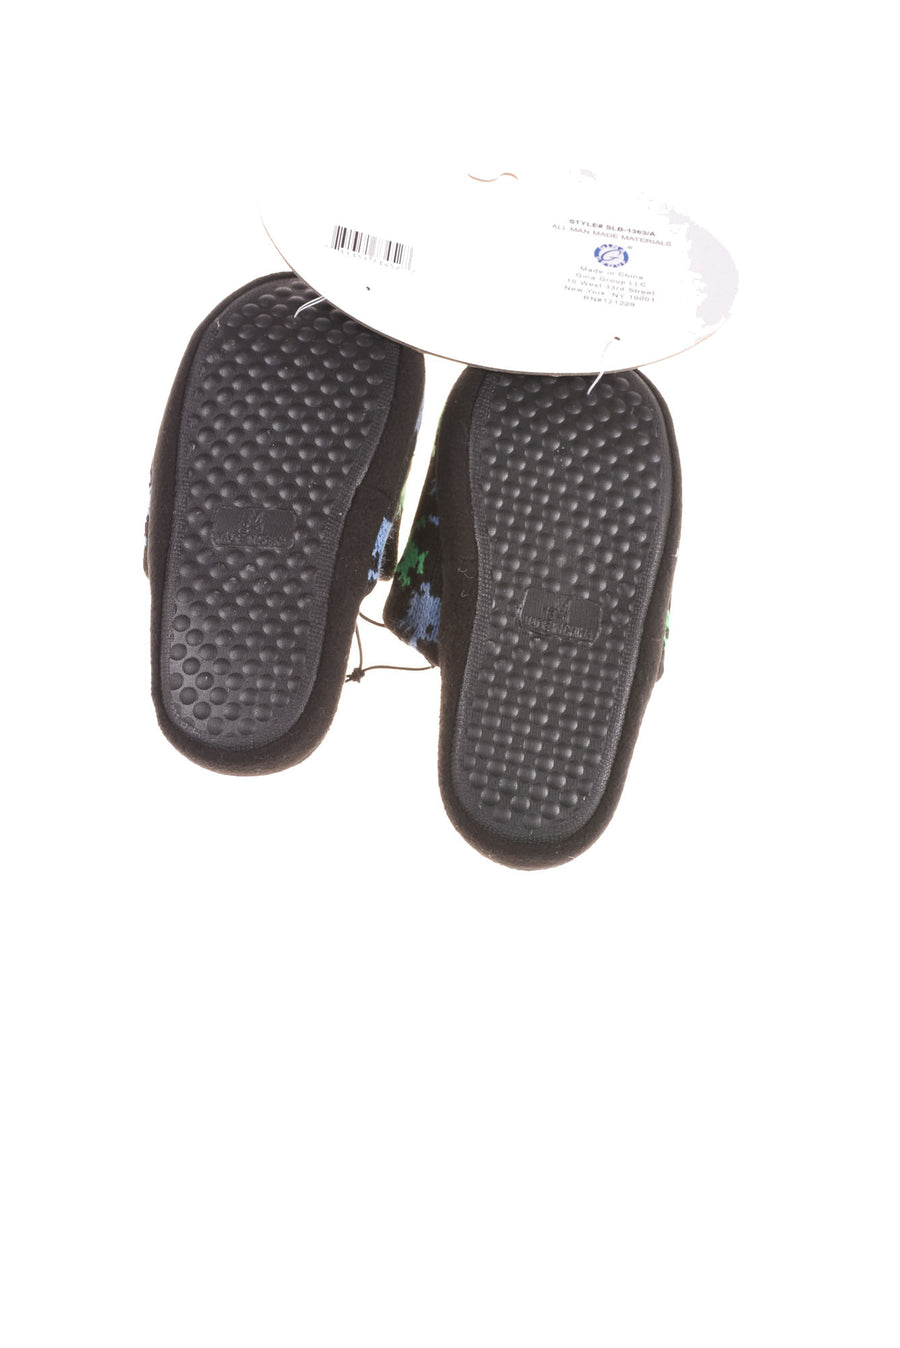 NEW Zac & Evan Boy's Slippers Medium Black